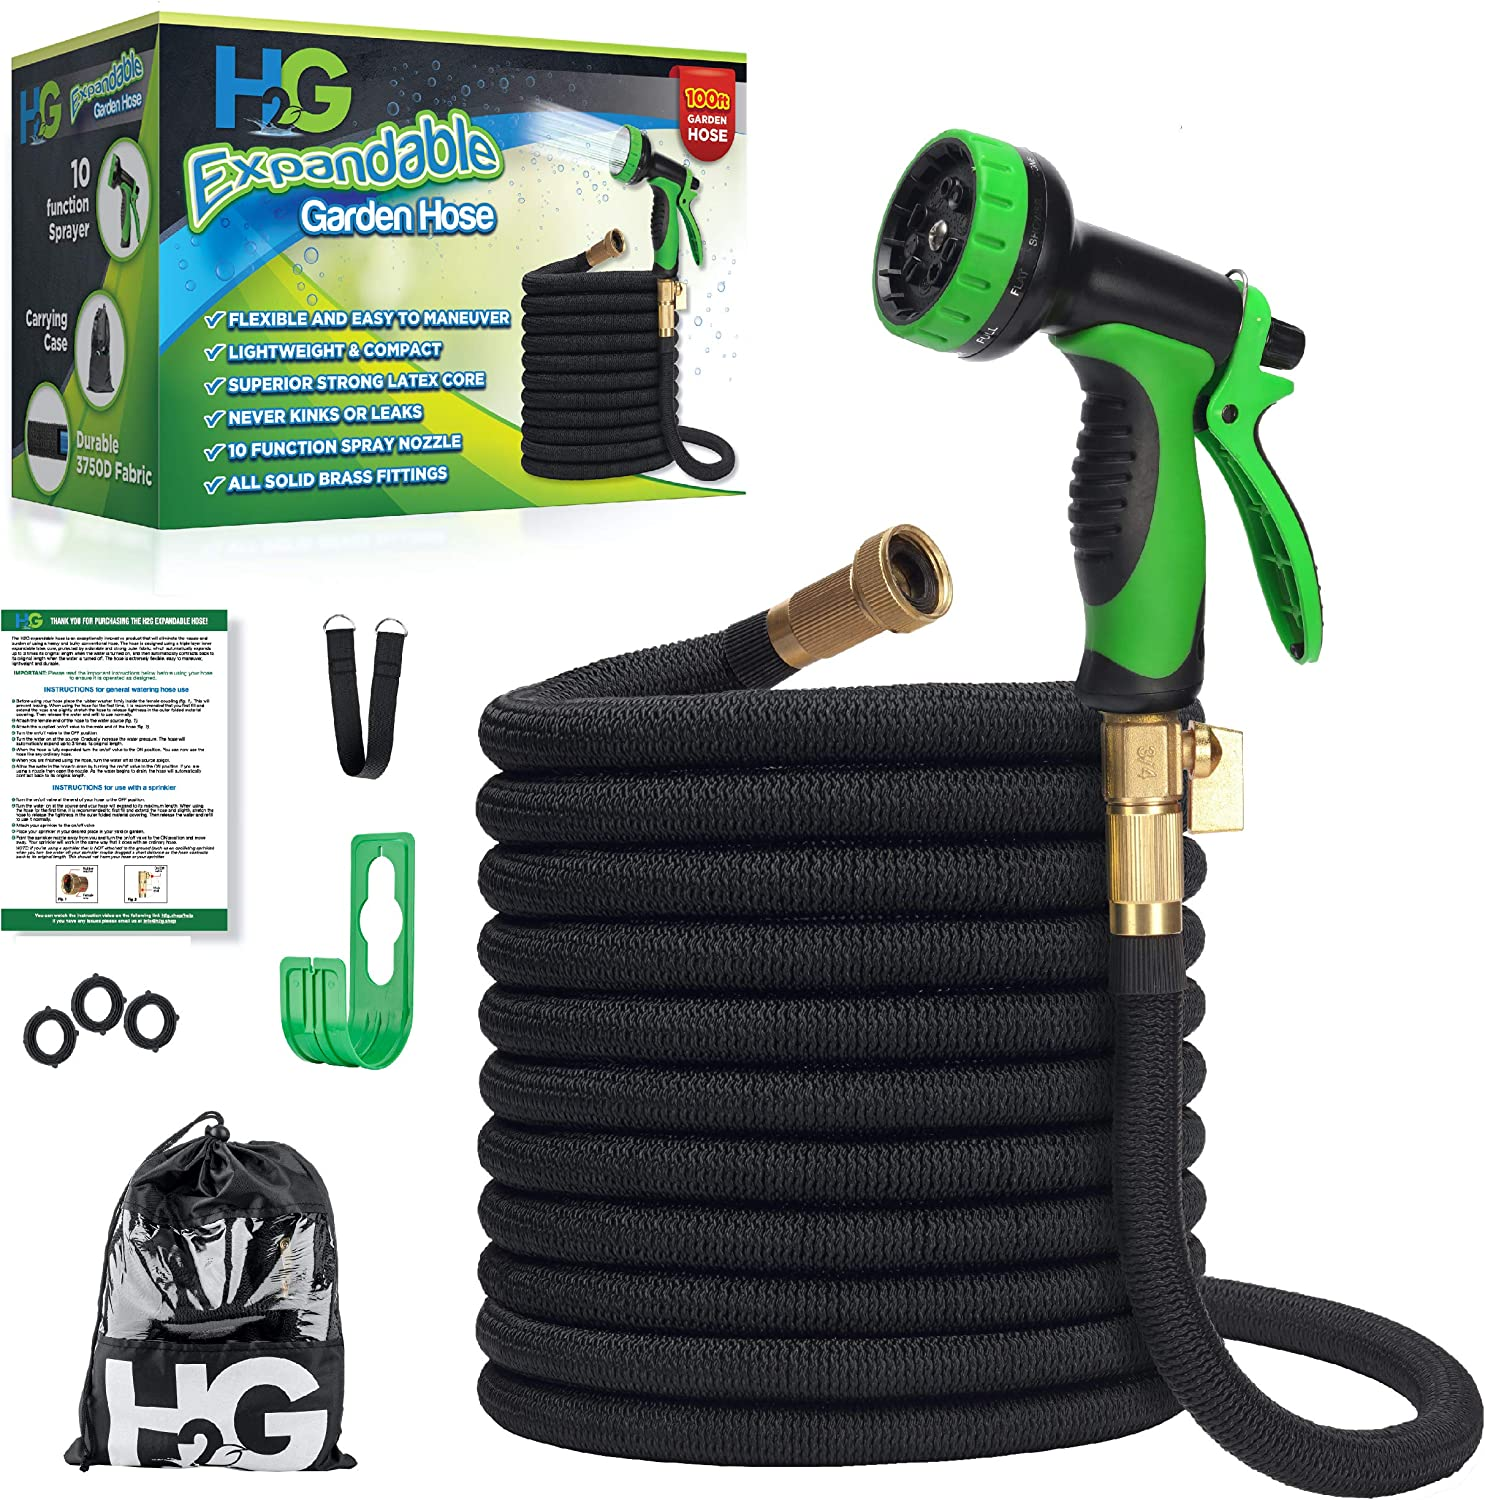 H₂G Flexible Garden Hose 100ft | New 2020 Expandable Superior Strength Lightweight Retractable Water Hose 100 ft | Expanding Black Flex No Kink Shrinking Hoses | 3/4 Brass Connectors | 10 Mode Sprayer